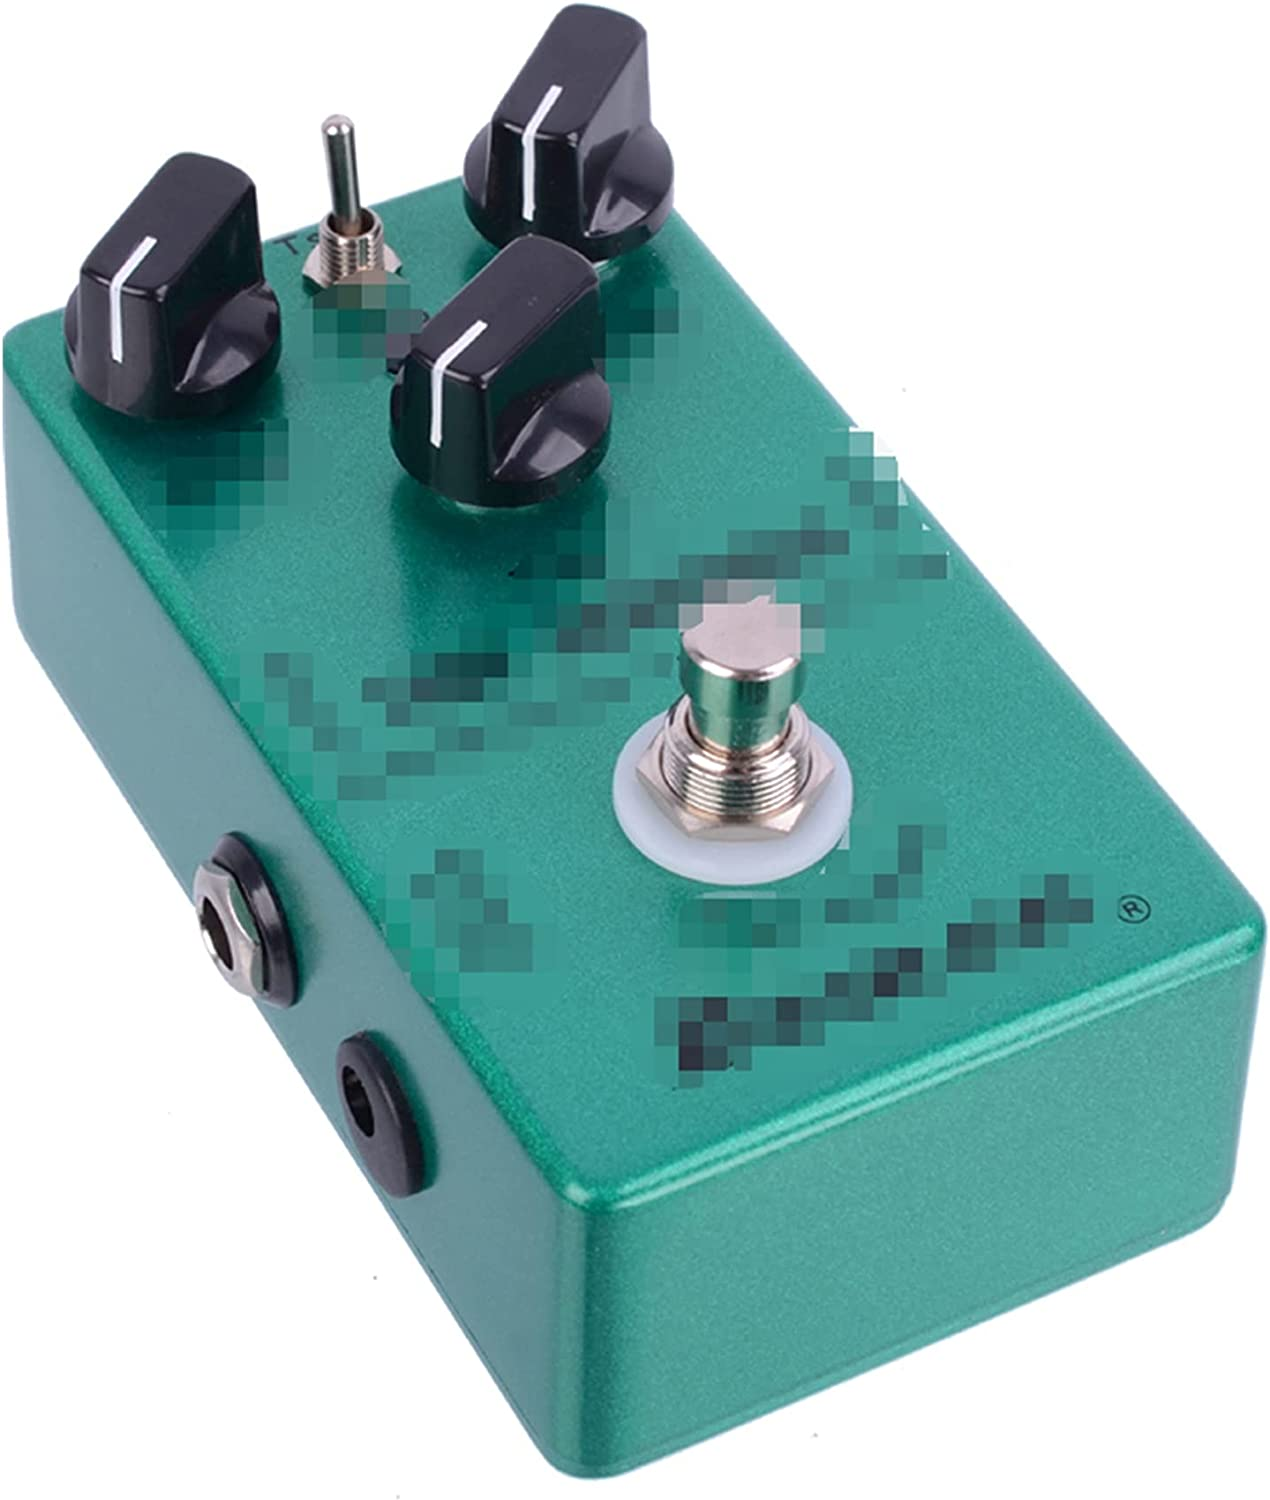 MAOFANG Chengfeng Commodities Ajuste para Demon TS808 Tube Fit para Screamer Fit para Overdrive Pro Vintage Electric Guitar Effect Pedal